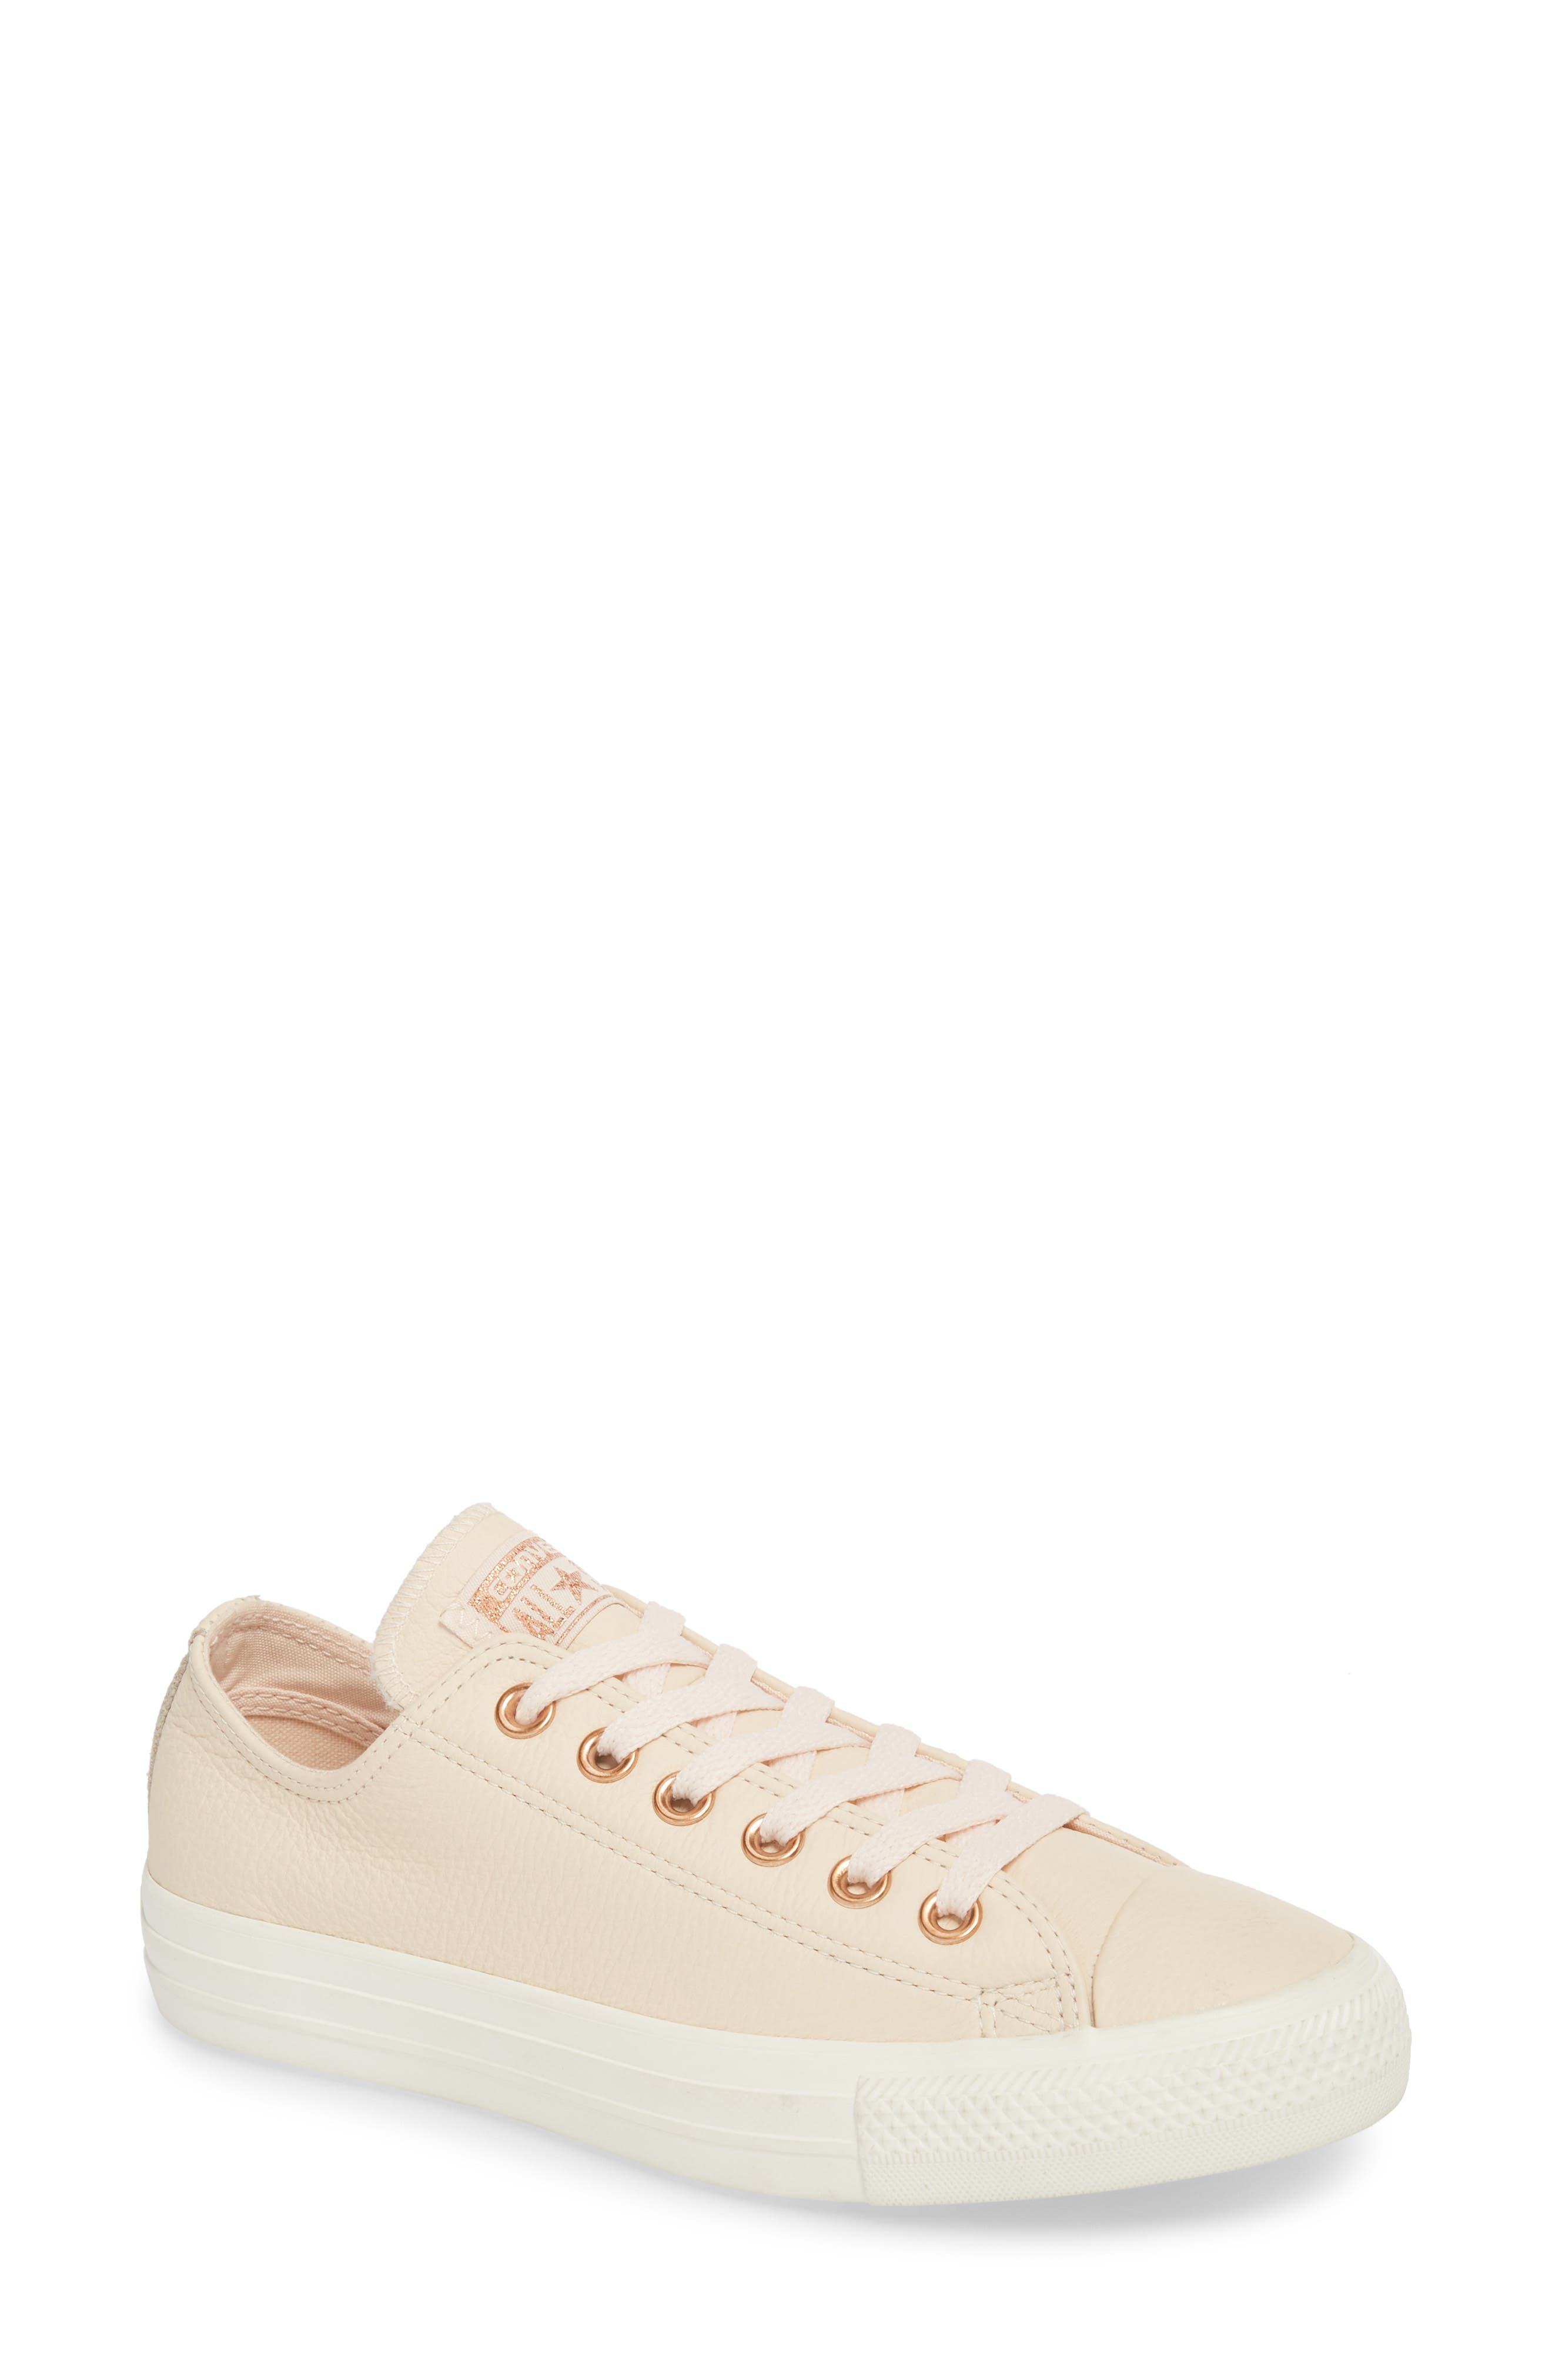 Chuck Taylor<sup>®</sup> All Star<sup>®</sup> Seasonal Ox Low Top Sneaker,                         Main,                         color, Pastel Rose Leather